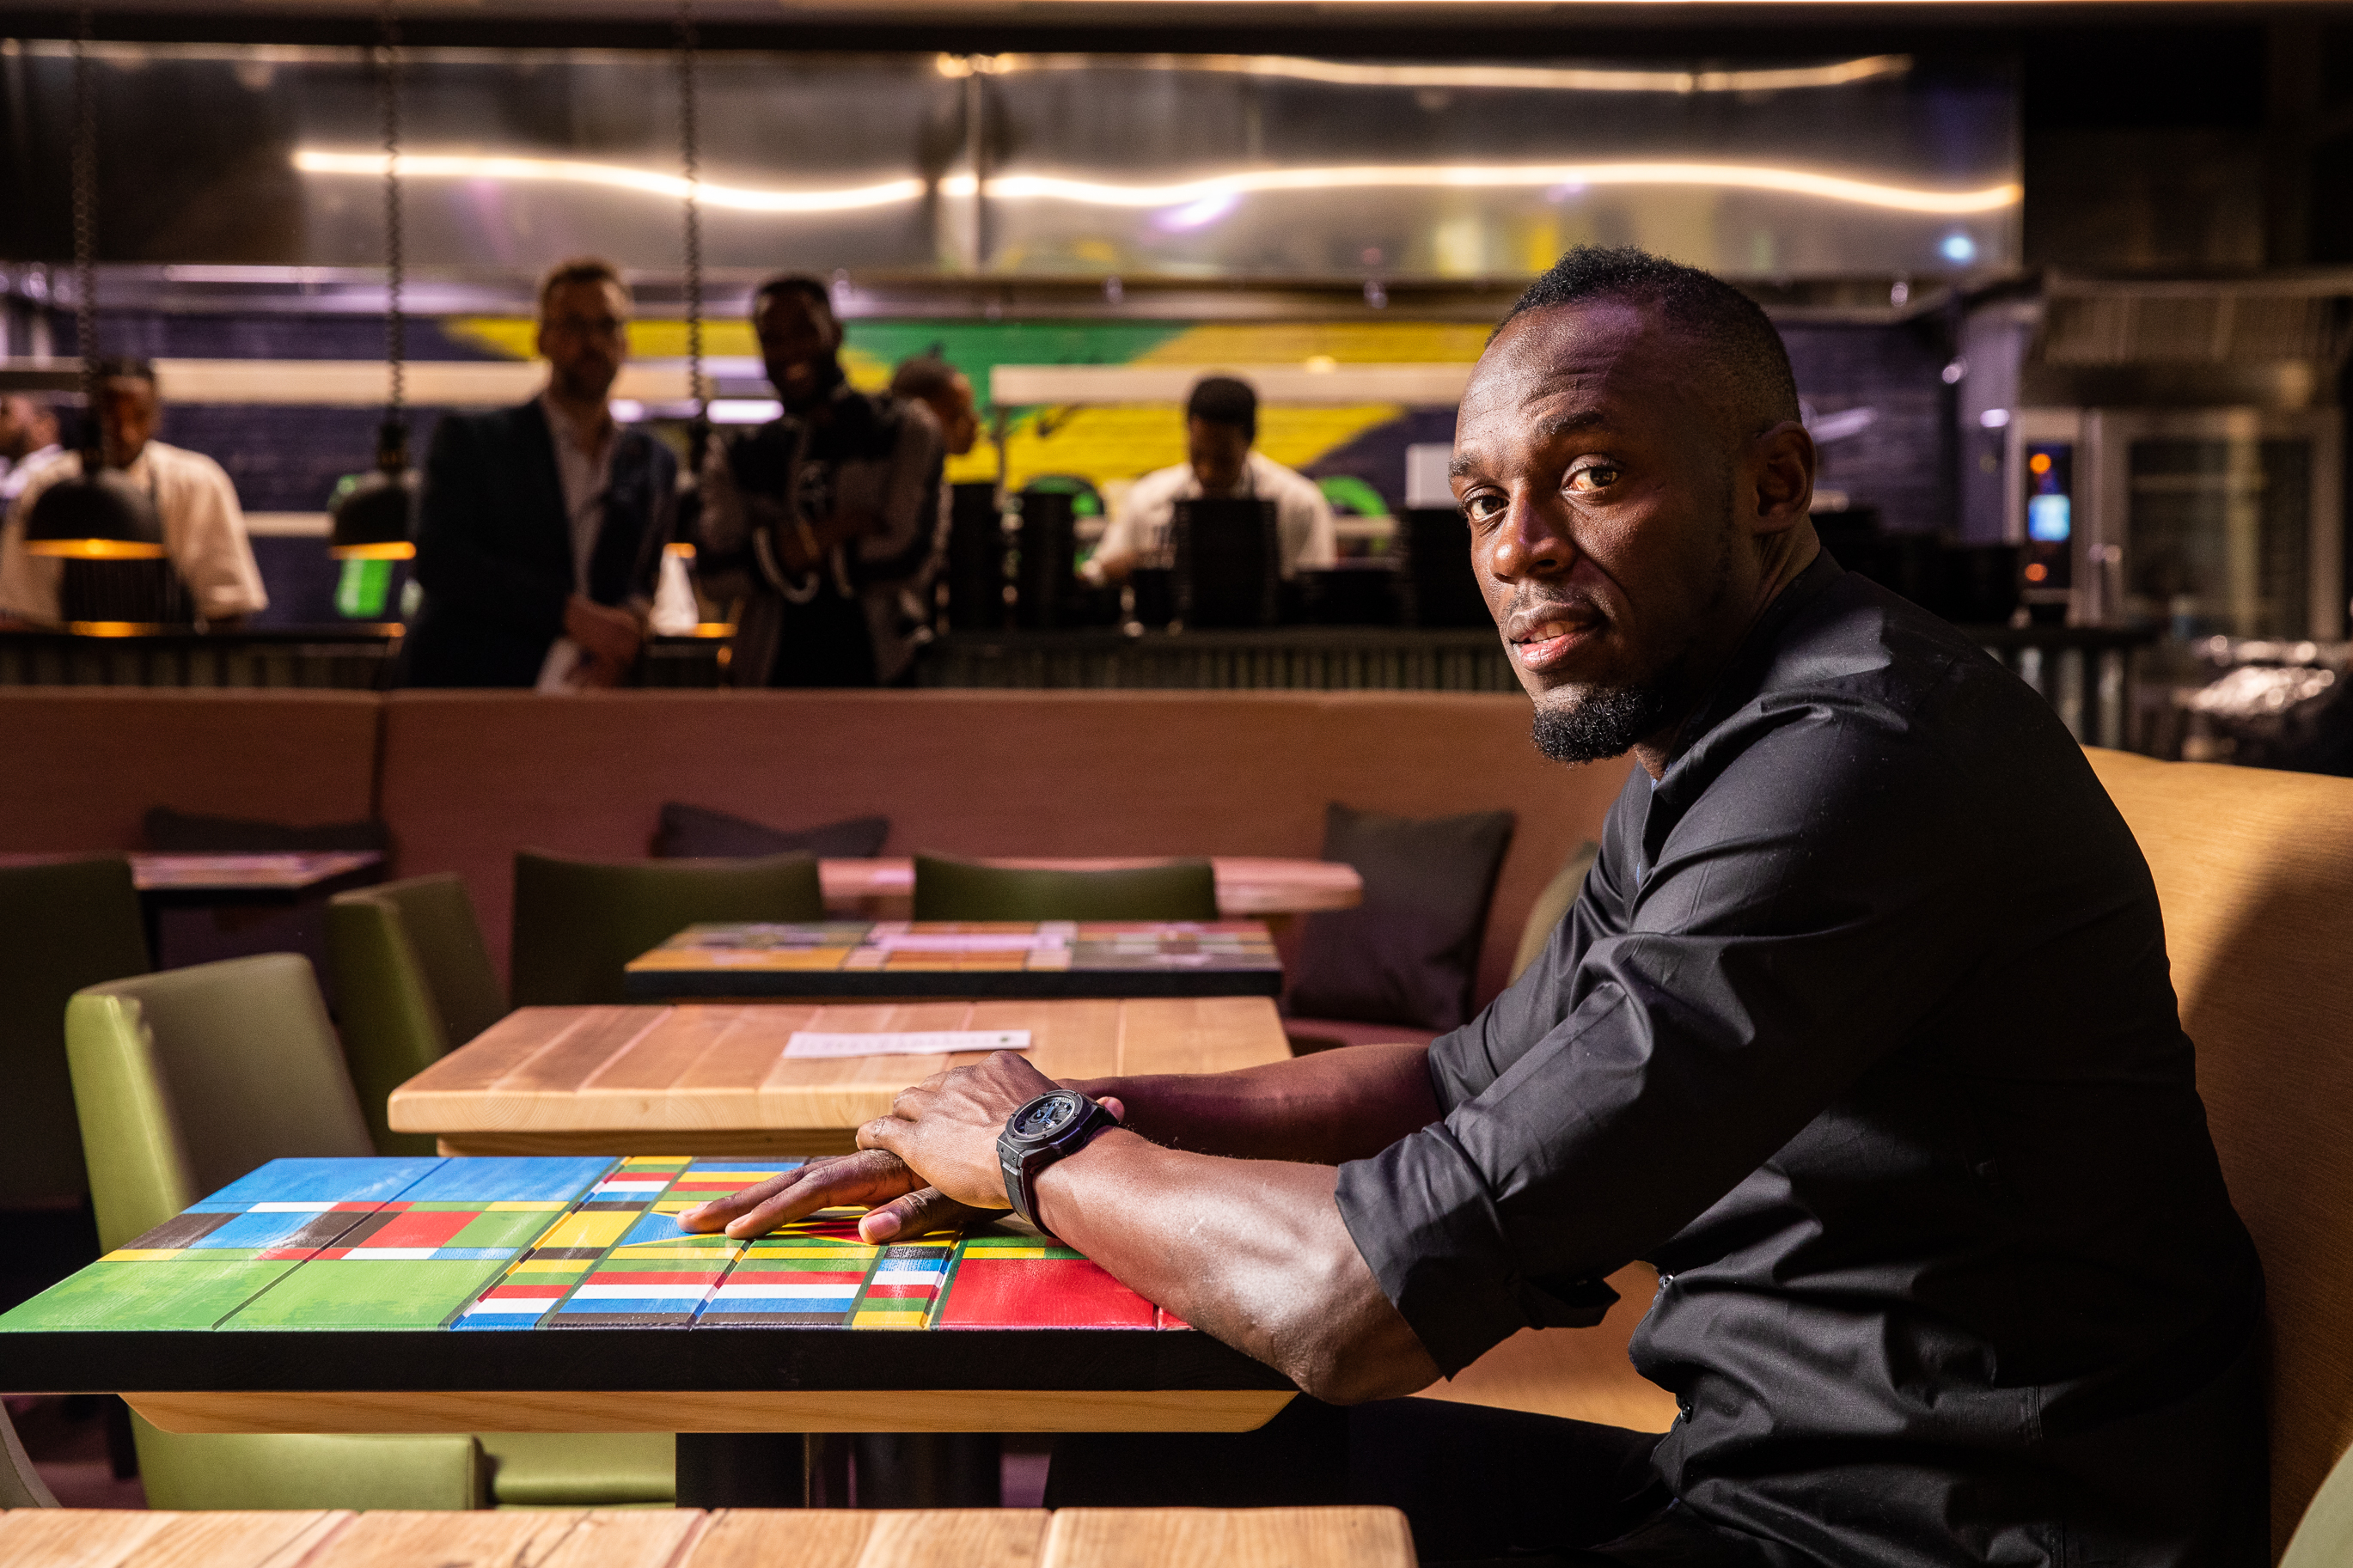 Usain Bolt's restaurant Tracks and Records in London is now open, owned by the world record sprinter and fastest man in history